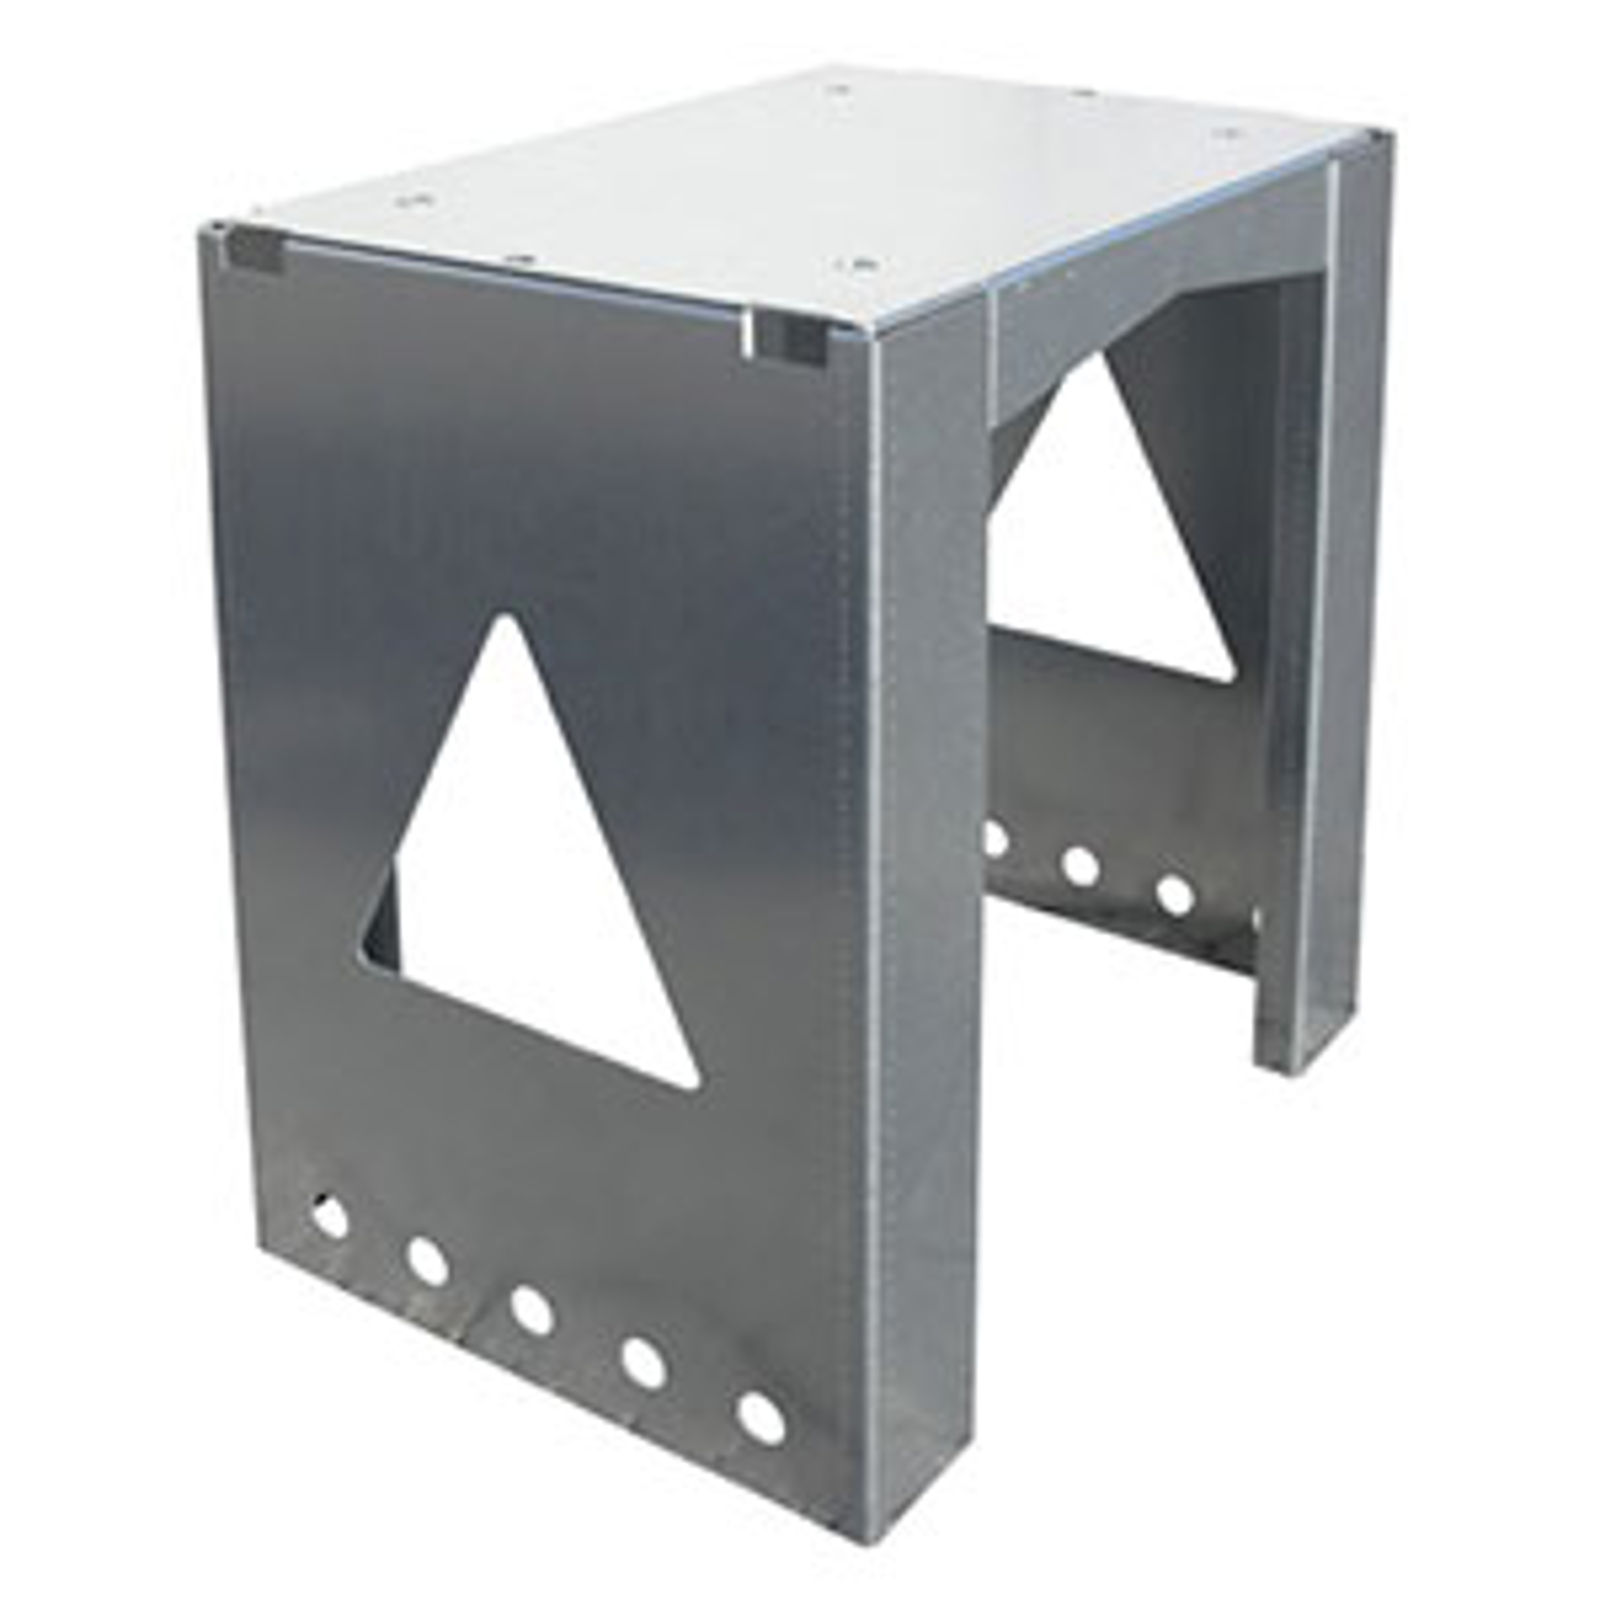 Universally applicable Stand 8002 letterbox stand_1045218_1